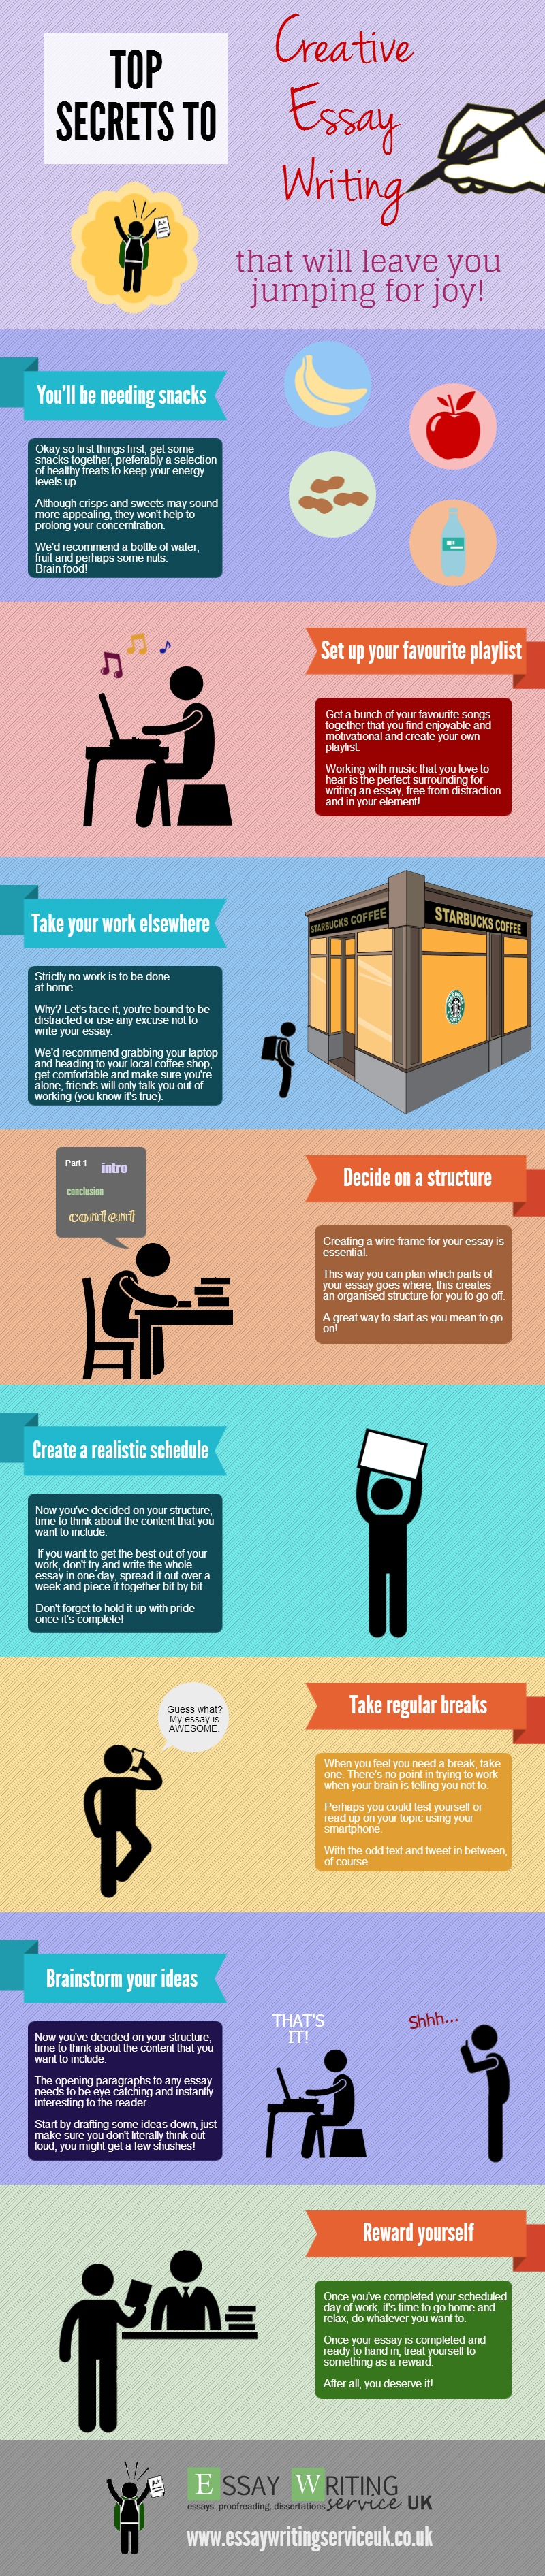 creative essay writing infographic